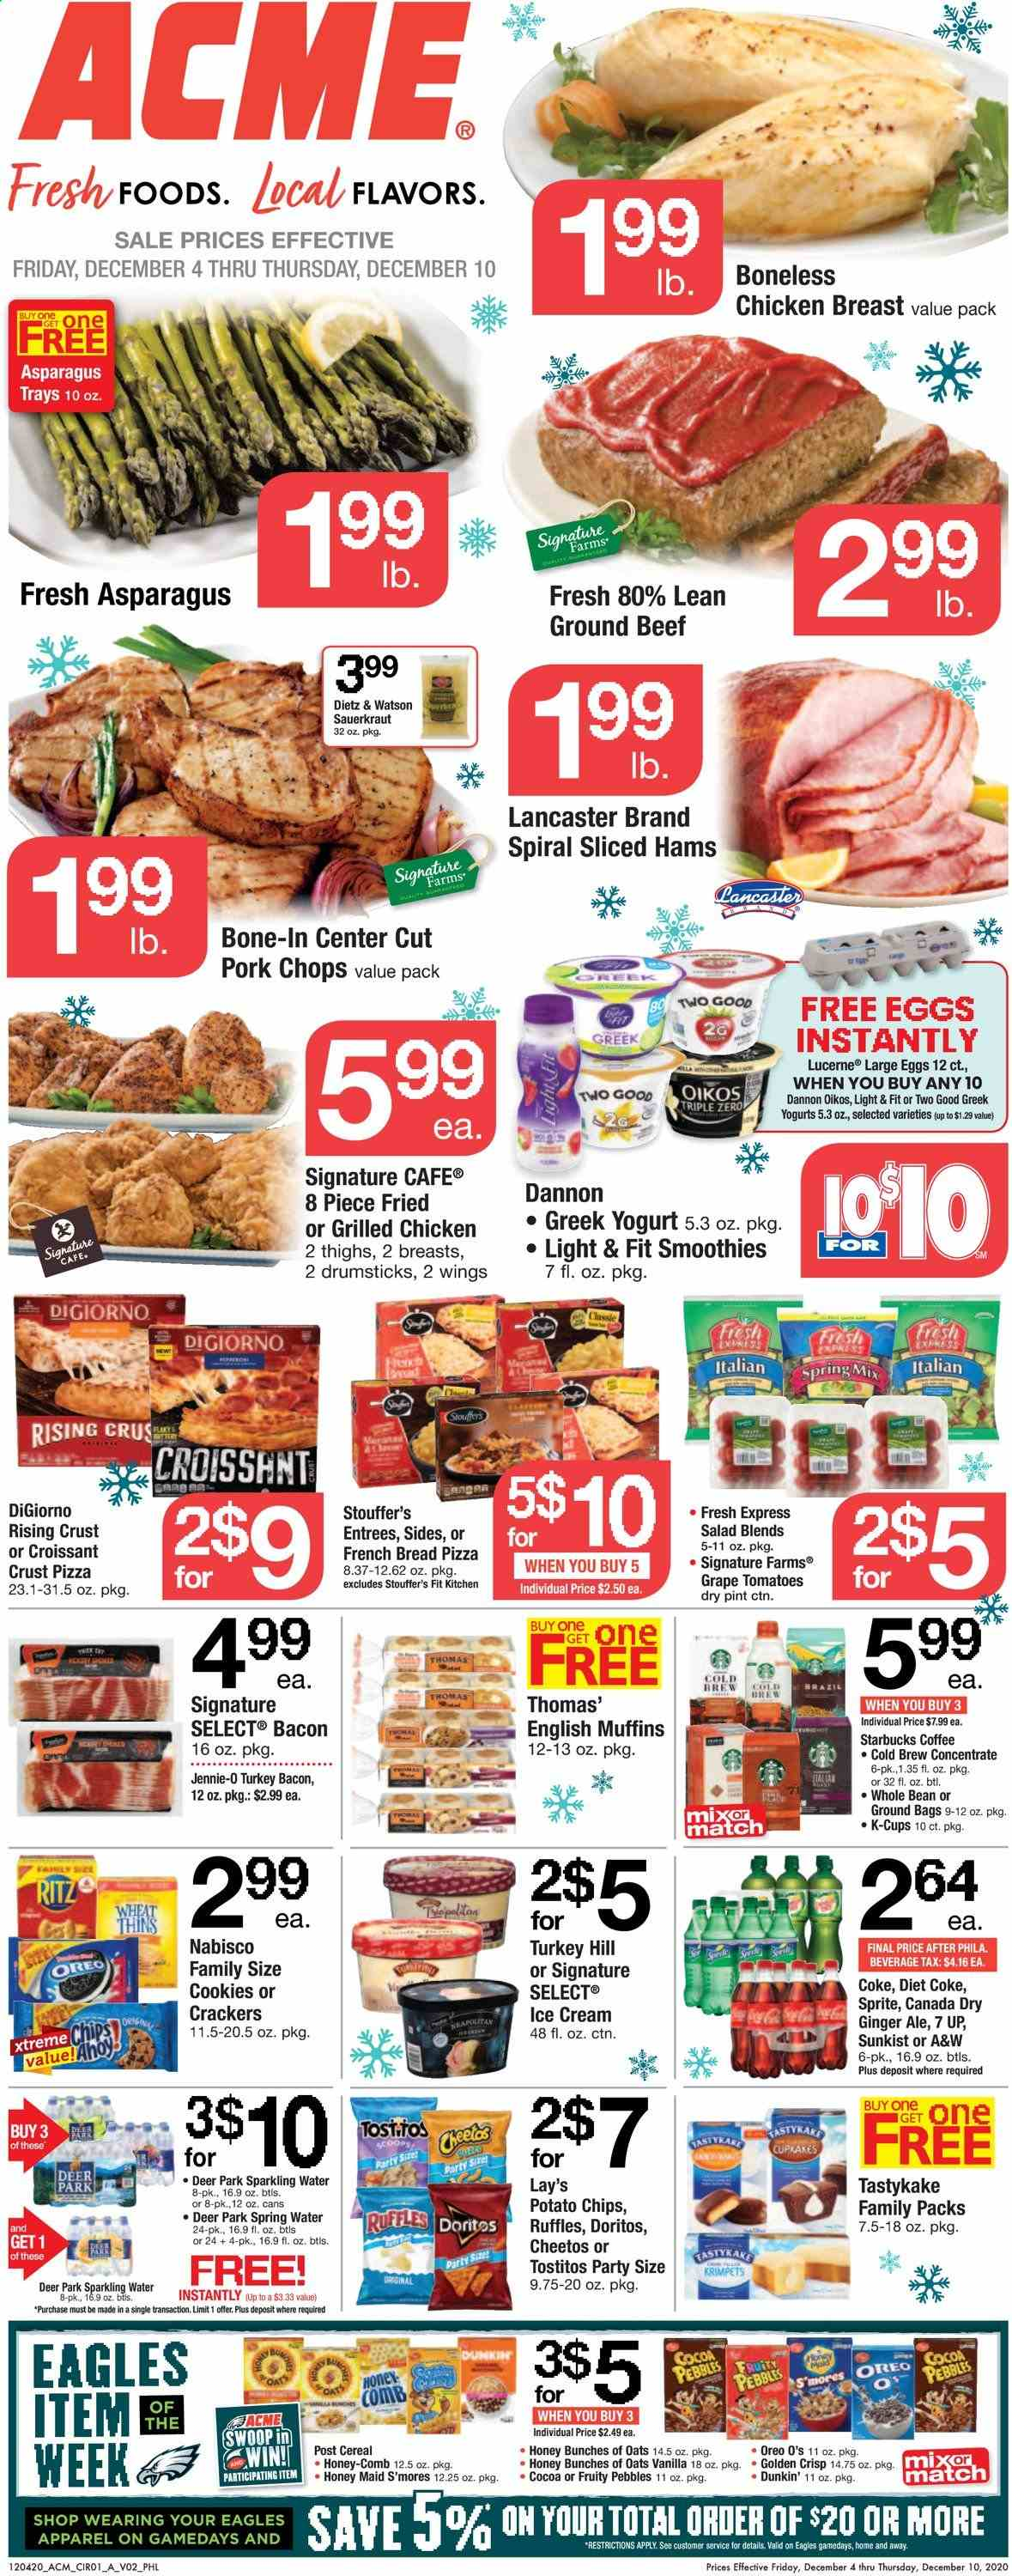 ACME Flyer - 12.04.2020 - 12.10.2020 - Sales products - deer, asparagus, ginger, tomatoes, grapes, bread, croissant, muffin, english muffins, pizza, bacon, turkey bacon, salad, greek yoghurt, Oreo, eggs, ice cream, cookies, cracker, crackers, Doritos, potato chips, Cheetos, chips, Lay's, cocoa, oats, sauerkraut, cereals, honey, Canada Dry, Coca-Cola, ginger ale, Sprite, Coca-Cola light, Diet Coke, spring water, sparkling water, water, coffee, turkey, chicken, chicken breast, beef meat, ground beef, pork chops, pork meat, croissants, muffins, Starbucks. Page 1.